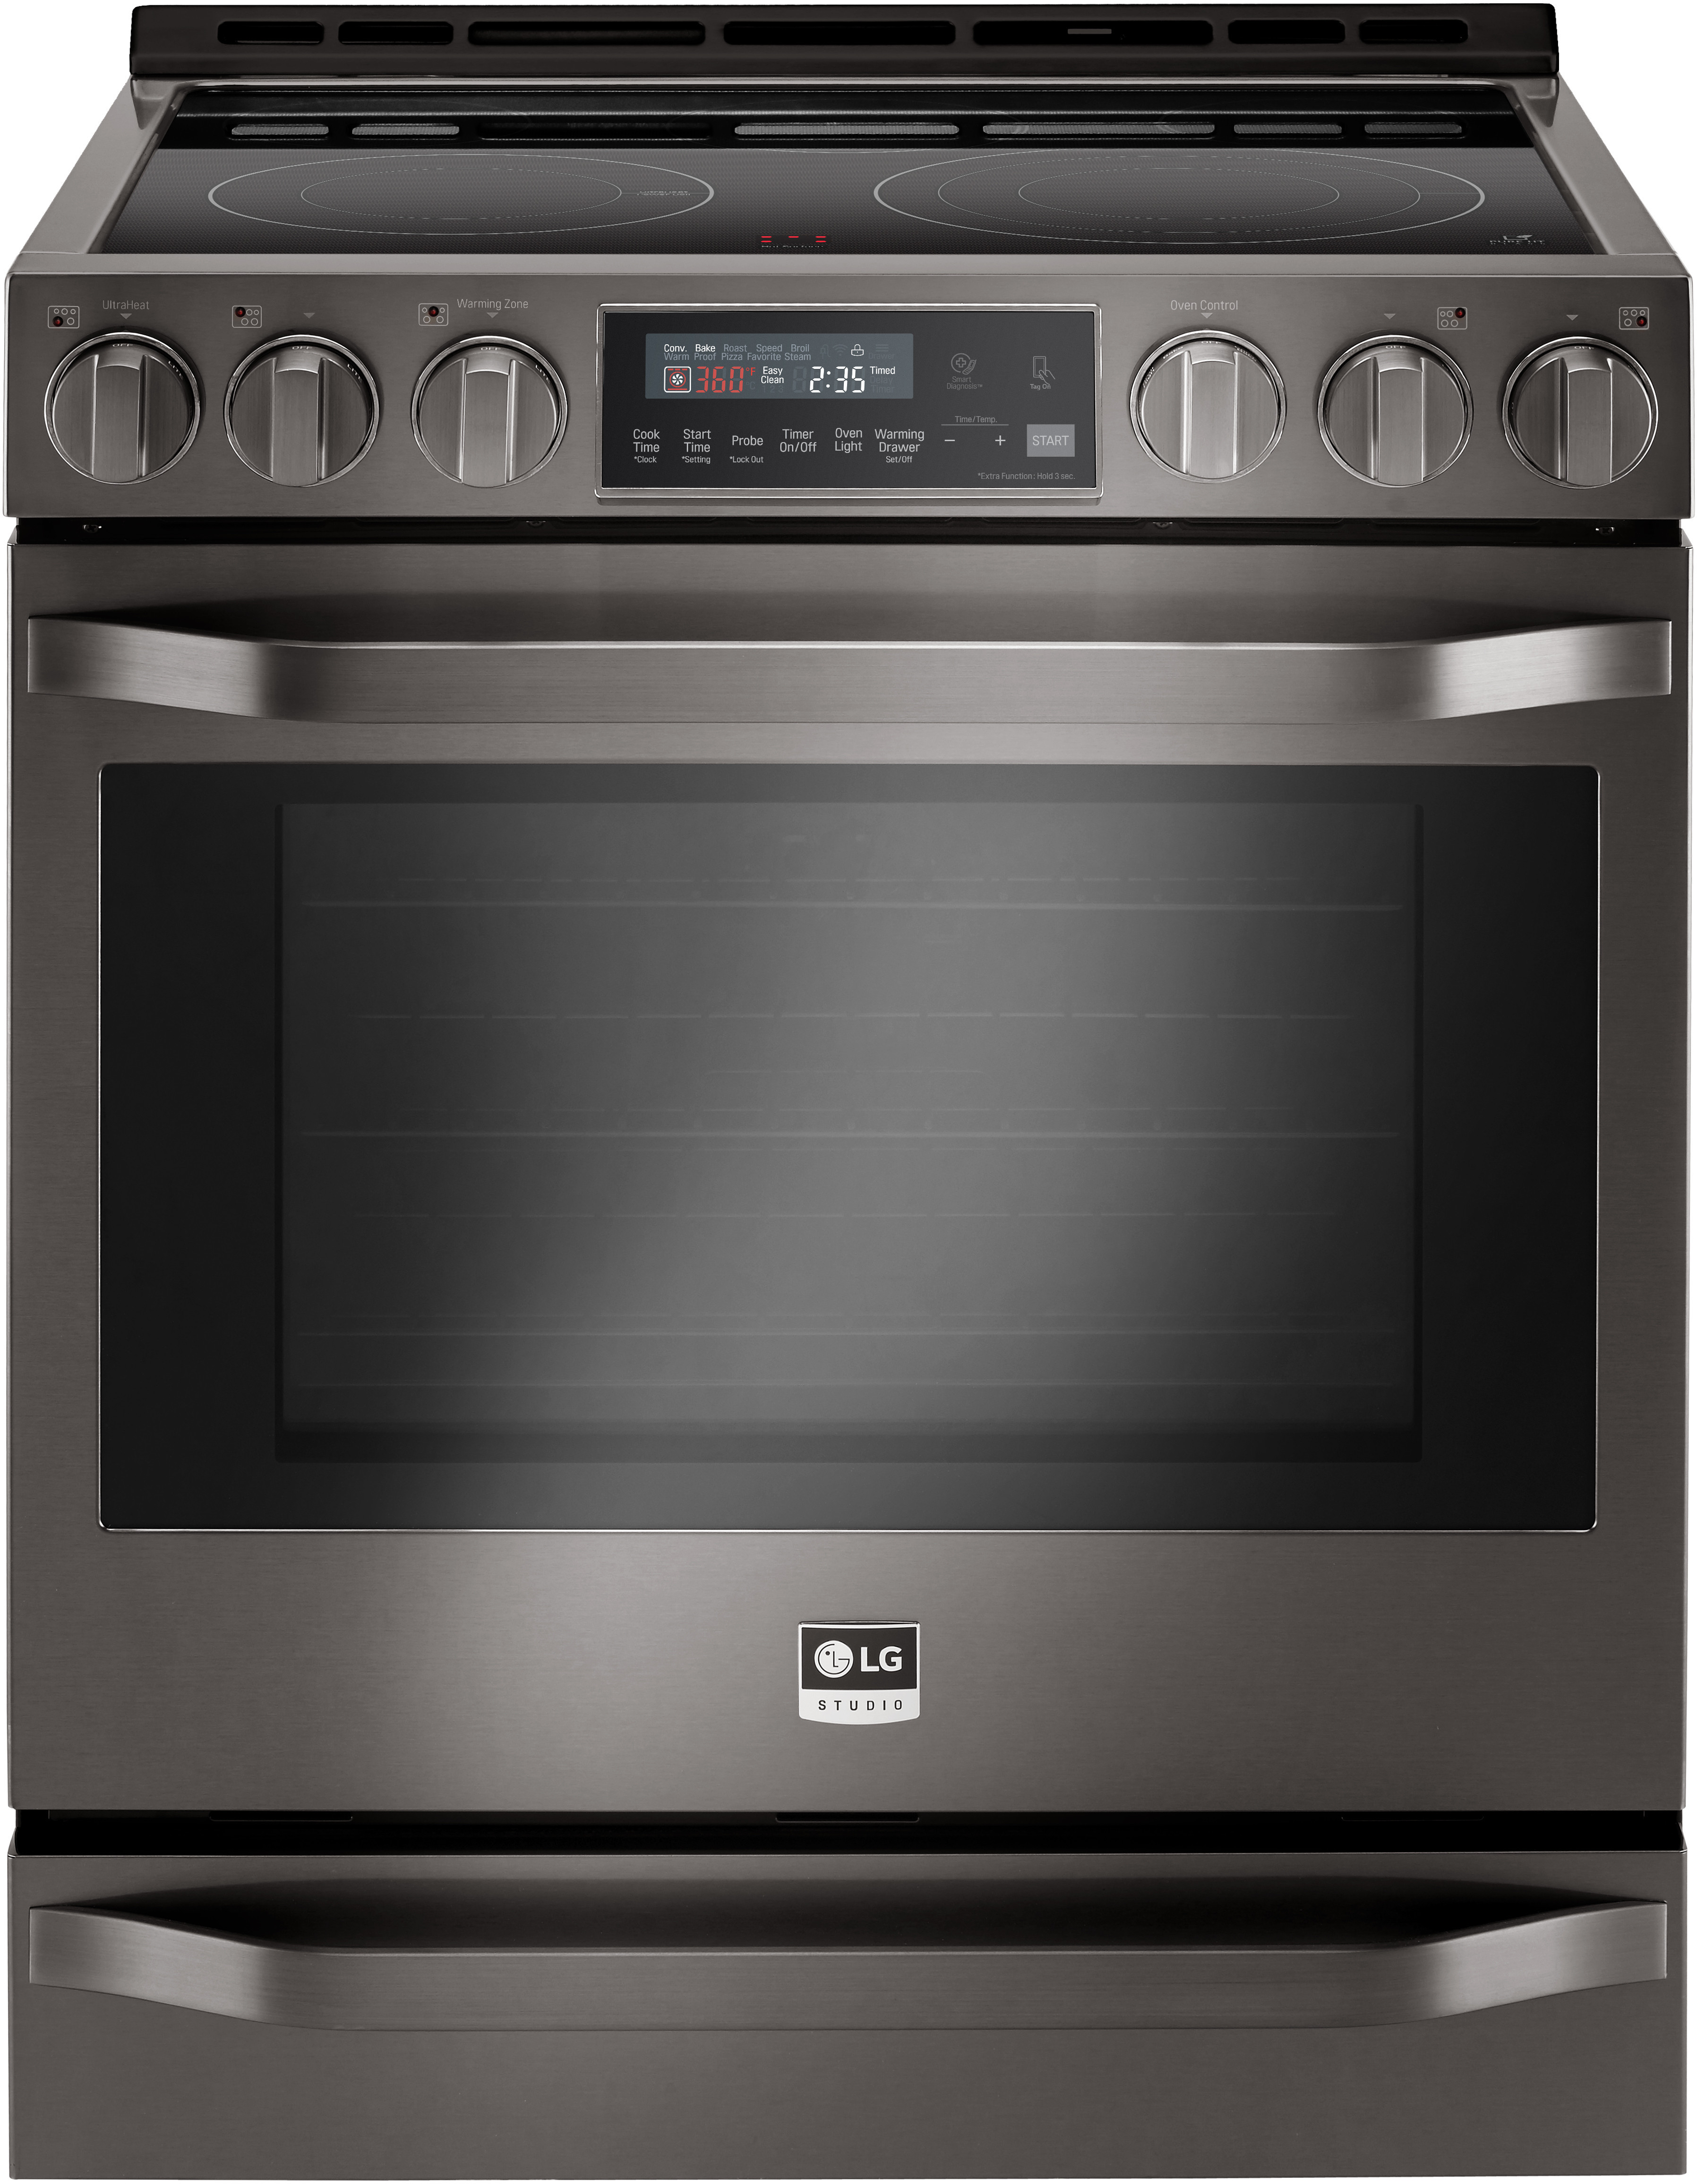 Lg Lsse3029bd 30 Inch Slide In Electric Range With Convection